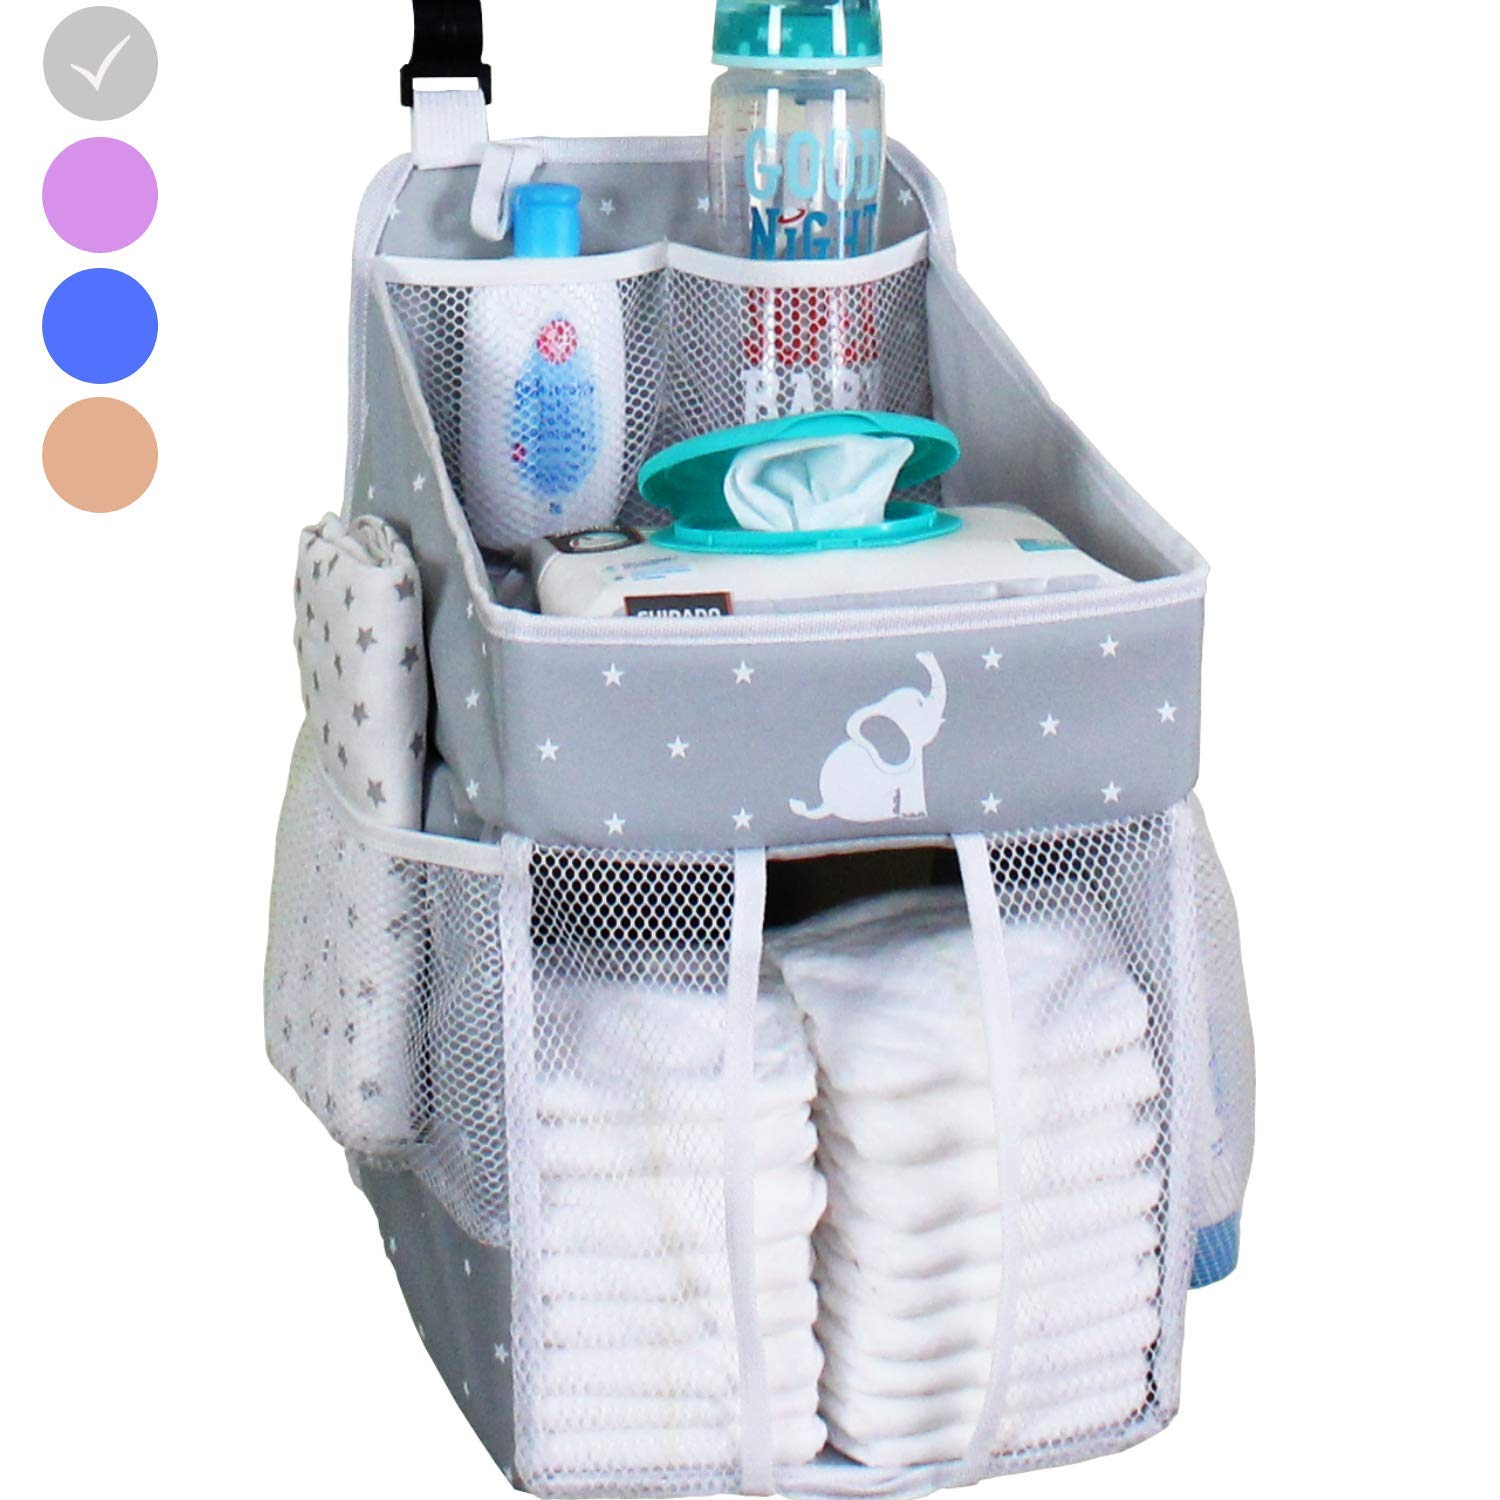 Hanging Diaper Caddy - Crib Diaper Organizer - Diaper Stacker for Crib, Playard or Wall - Newborn Boy and Girl Diaper Holder for Changing Table - Baby Shower Gifts- Elephant Gray - 17x9x9 inches by Cradle Star